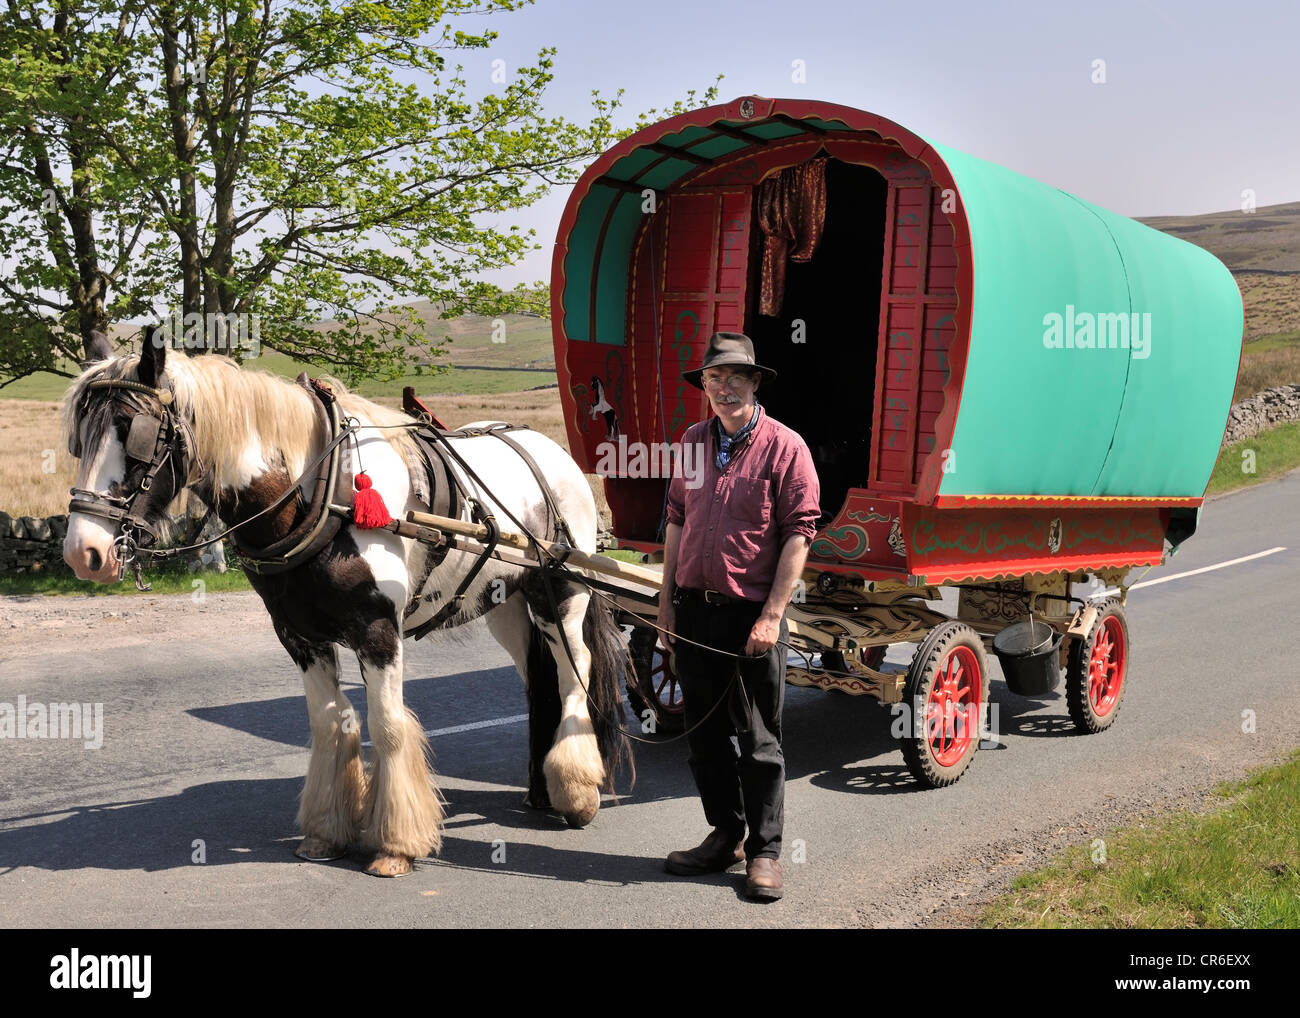 Cornish traveller en-route to the Appleby Horse Fair, Garsdale Head, Yorkshire, England - Stock Image